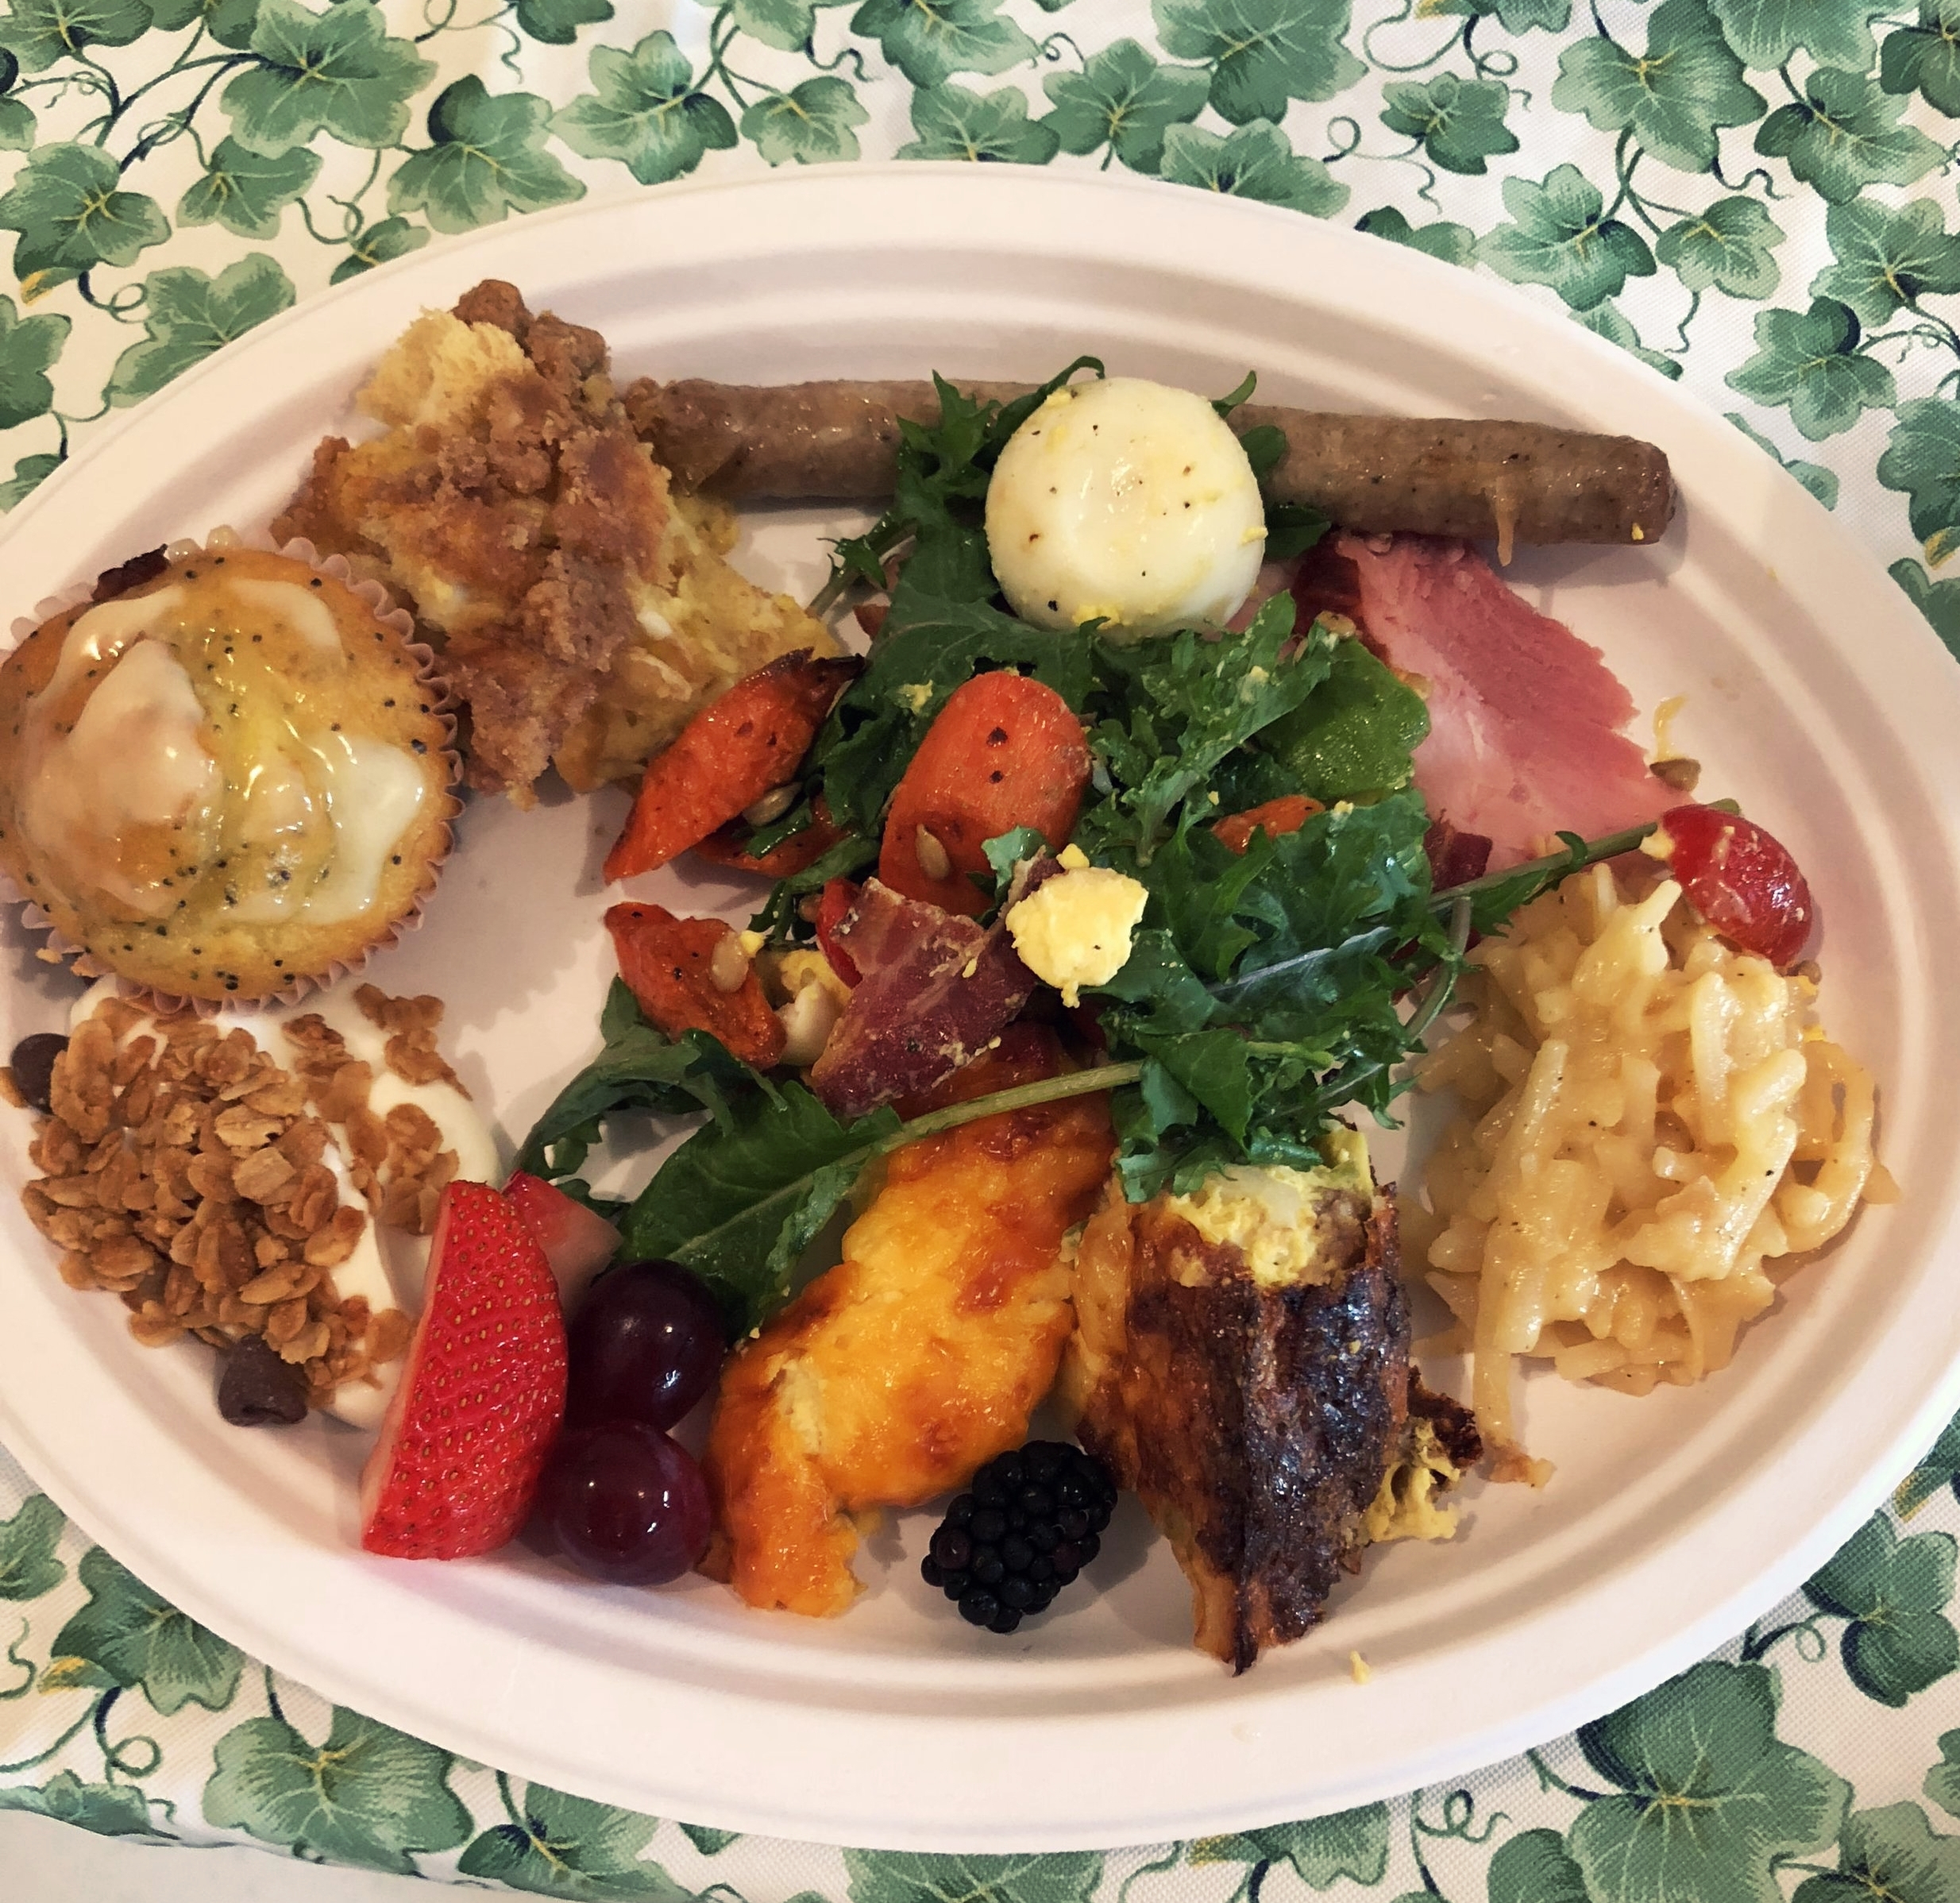 Not the most photogenic but let me tell you this brunch plate made me so happy. And the salad was a hit! It will likely make a return to next year's Easter brunch.